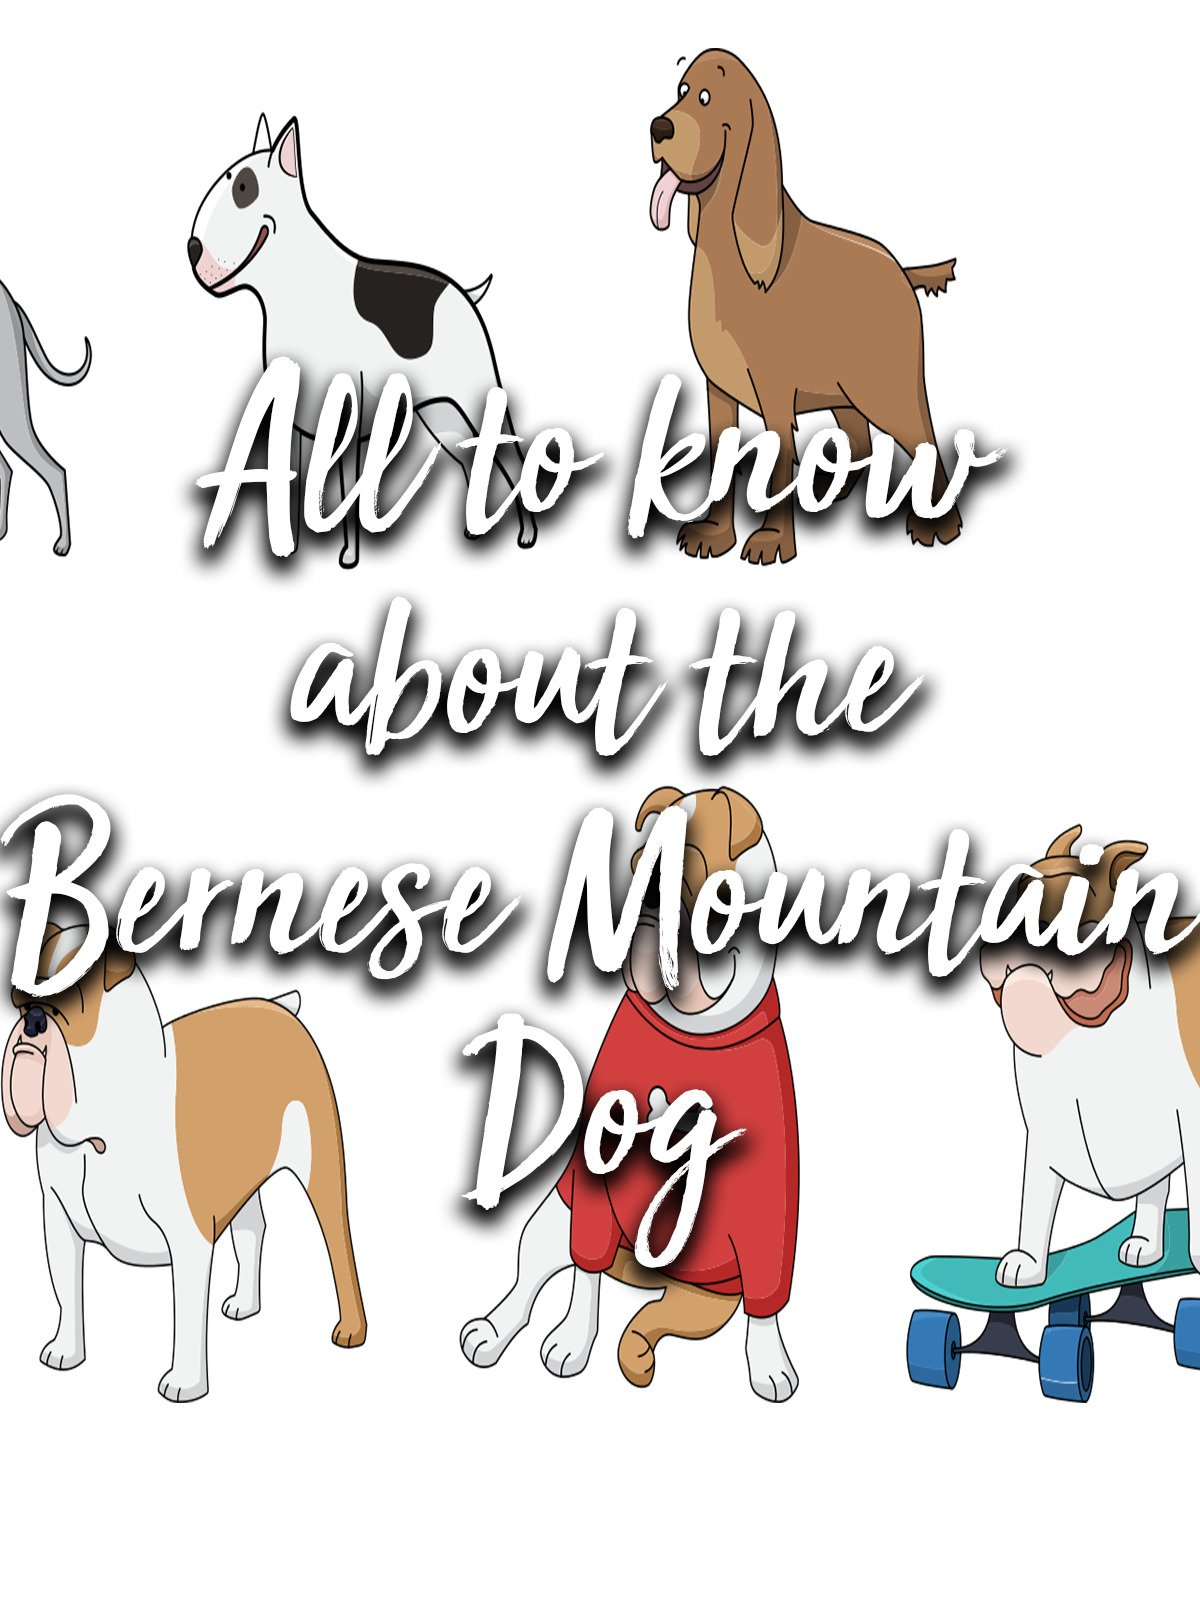 All to know about the Bernese Mountain Dog